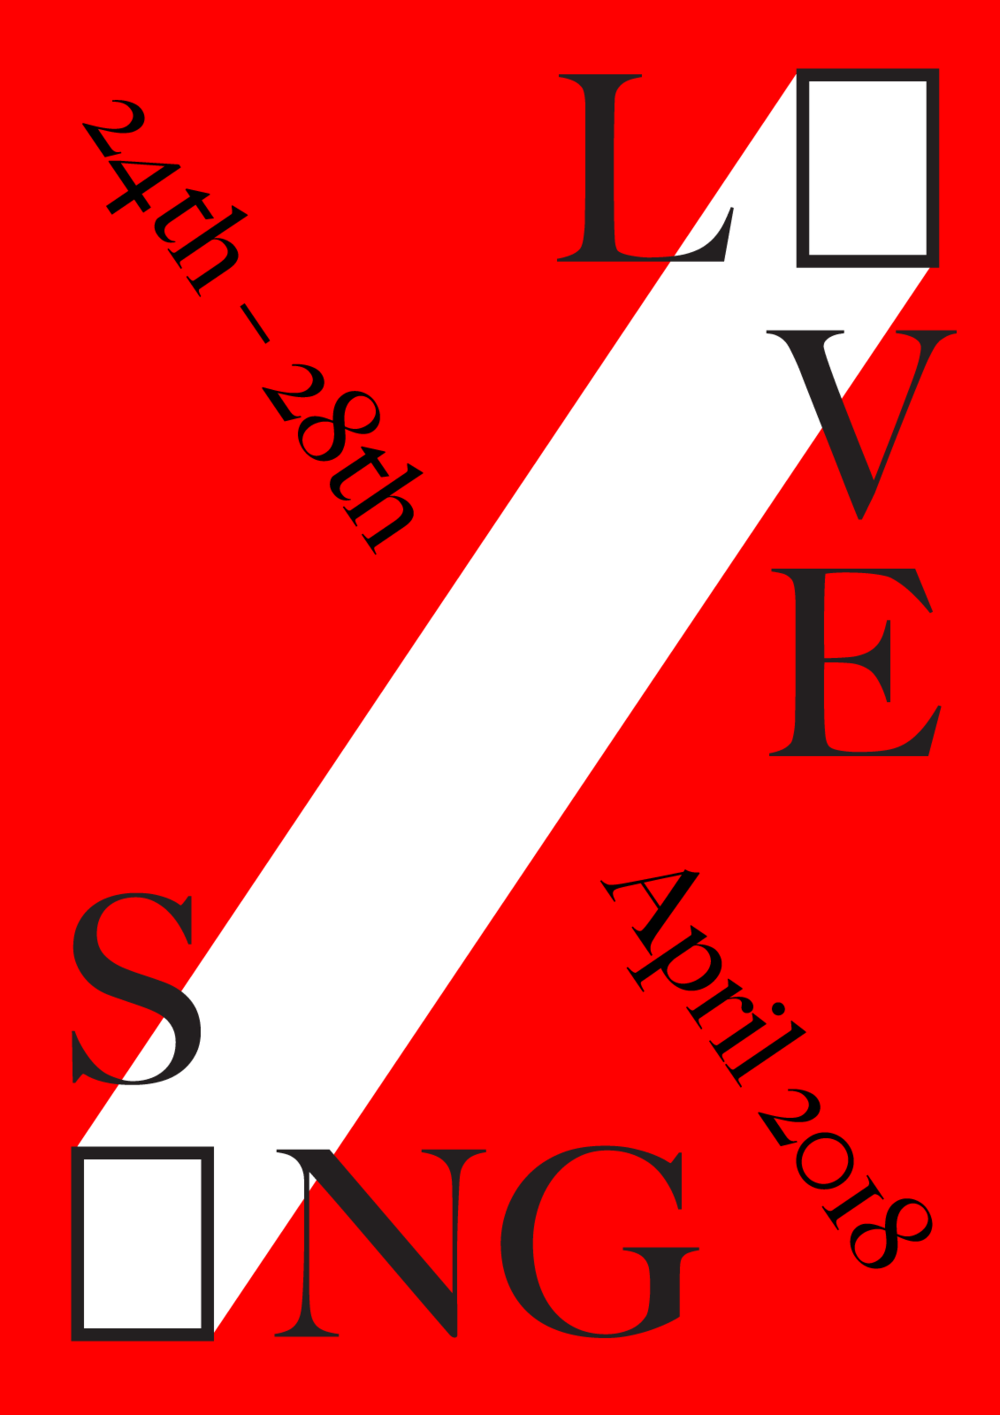 love-song-image-web-2(1).png